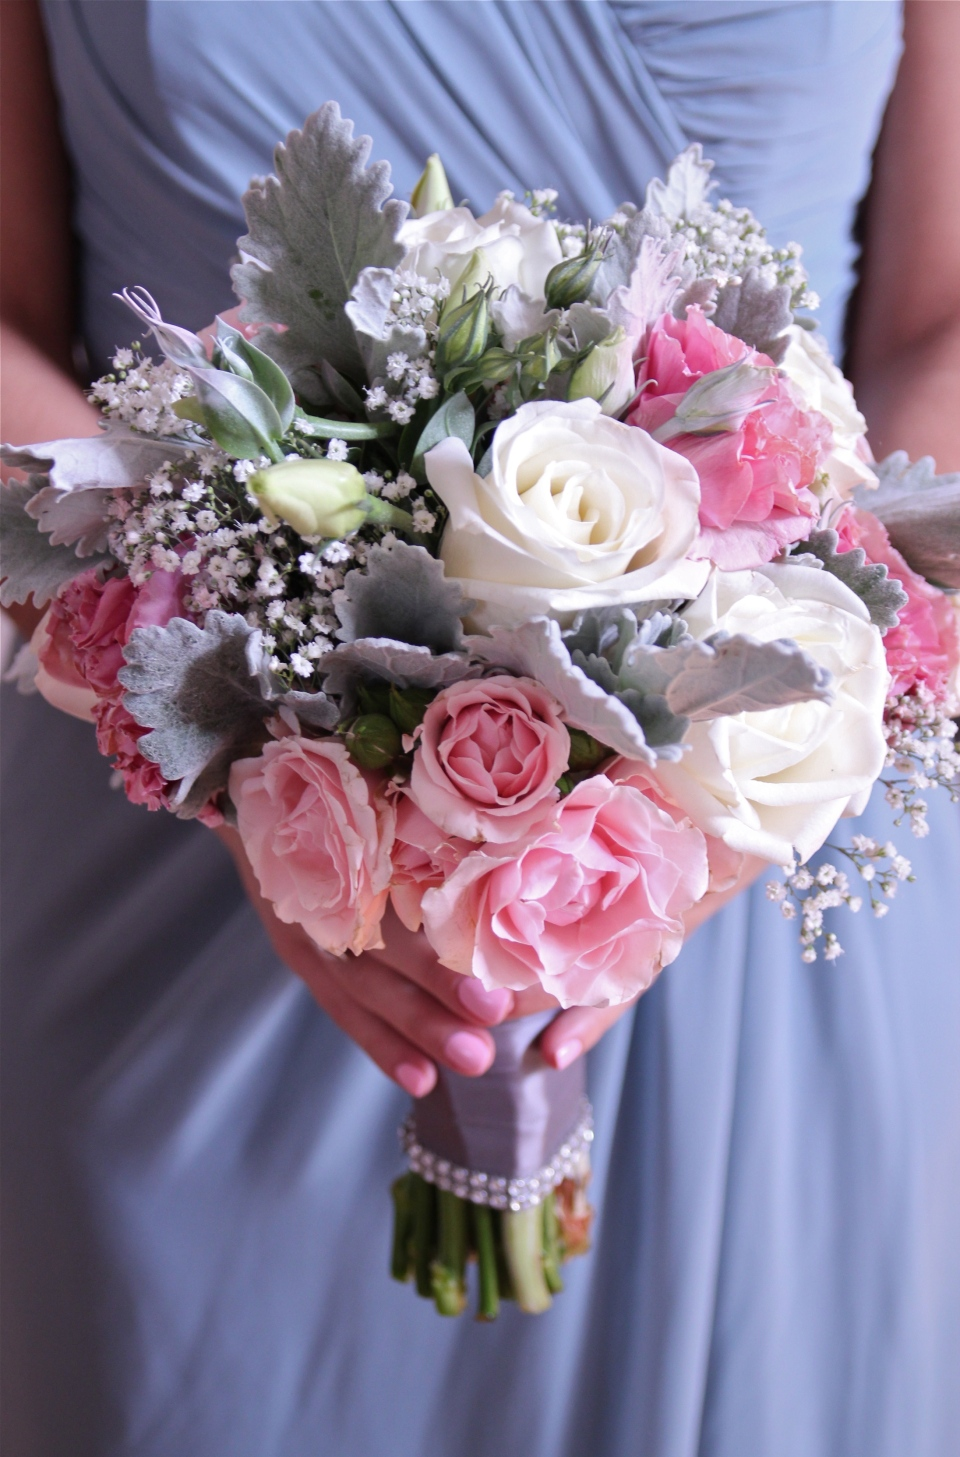 Vintage bouquet of roses, spray roses, lisianthus, baby's breath and dusty miller